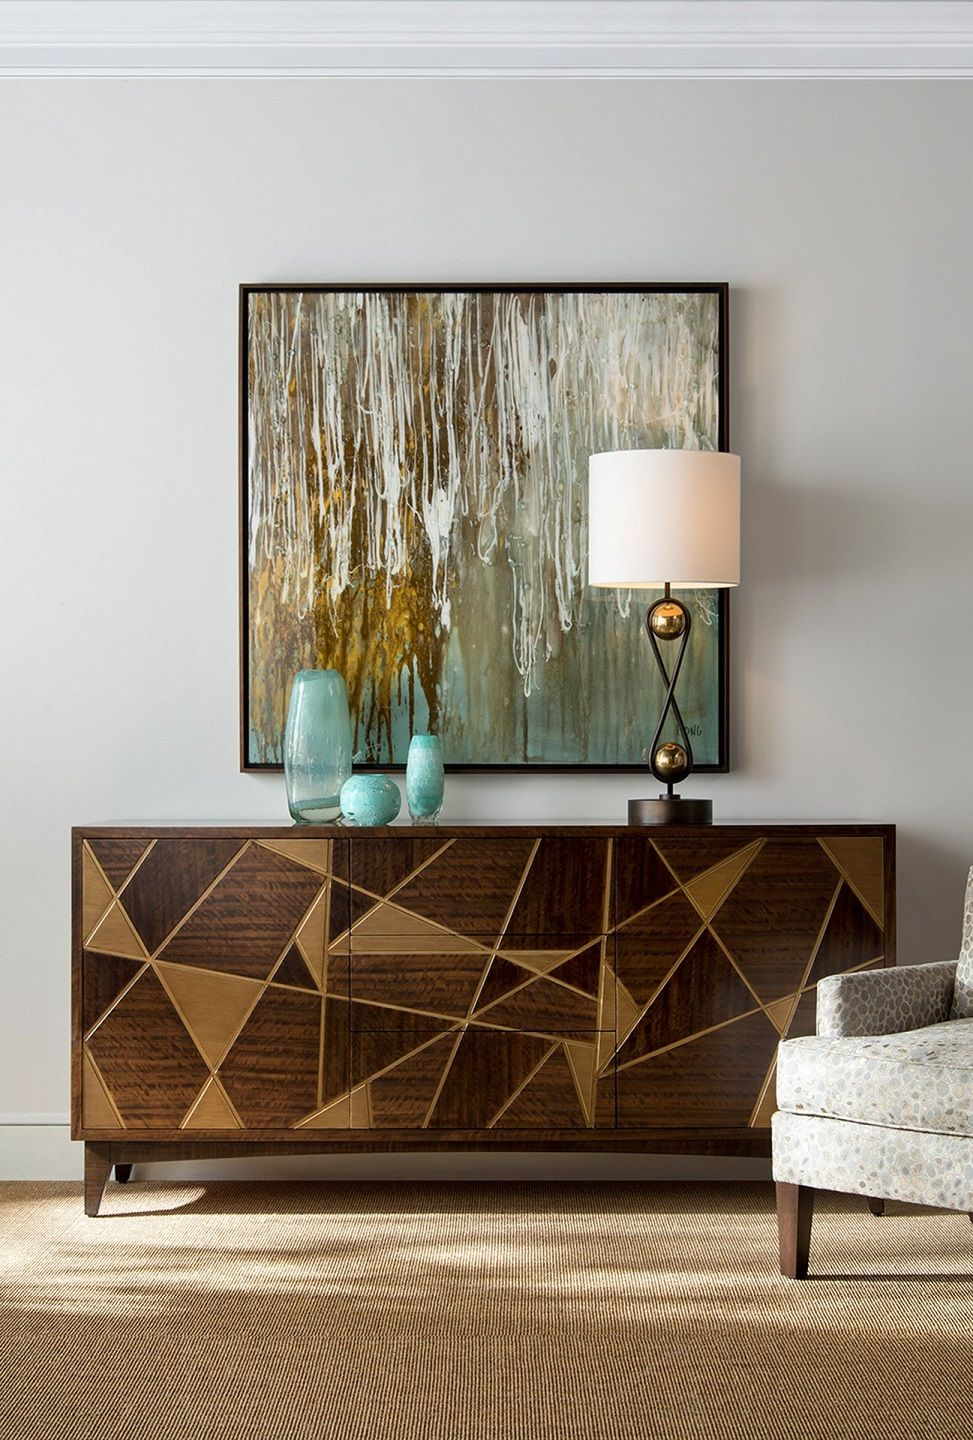 Limited production design stock grand mid century eucalyptus sideboard abstract triangular art design inc 2 cupboards with shelving 3 central